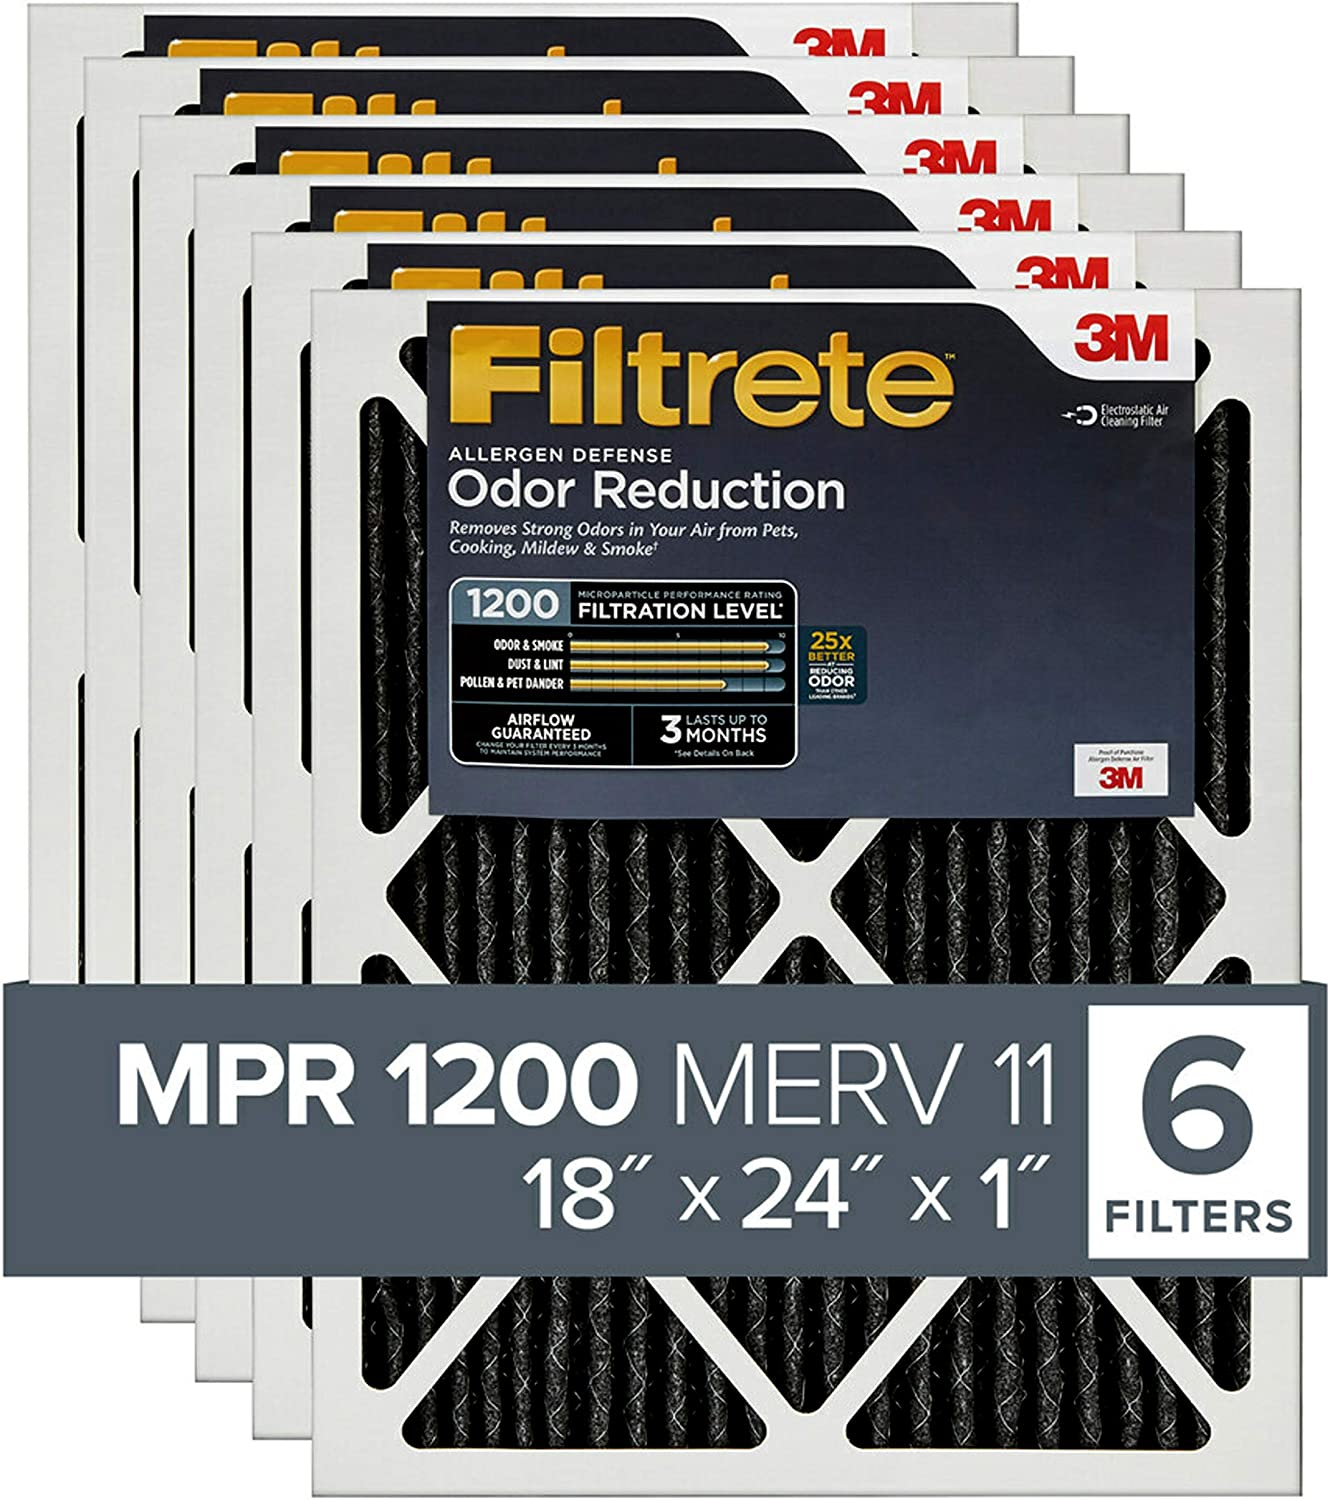 AC Furnace Air Filter Allergen Defense Odor Reduction Filtrete 20x20x1 MPR 1200 exact dimensions 19.69 x 19.69 x 0.81 2-Pack